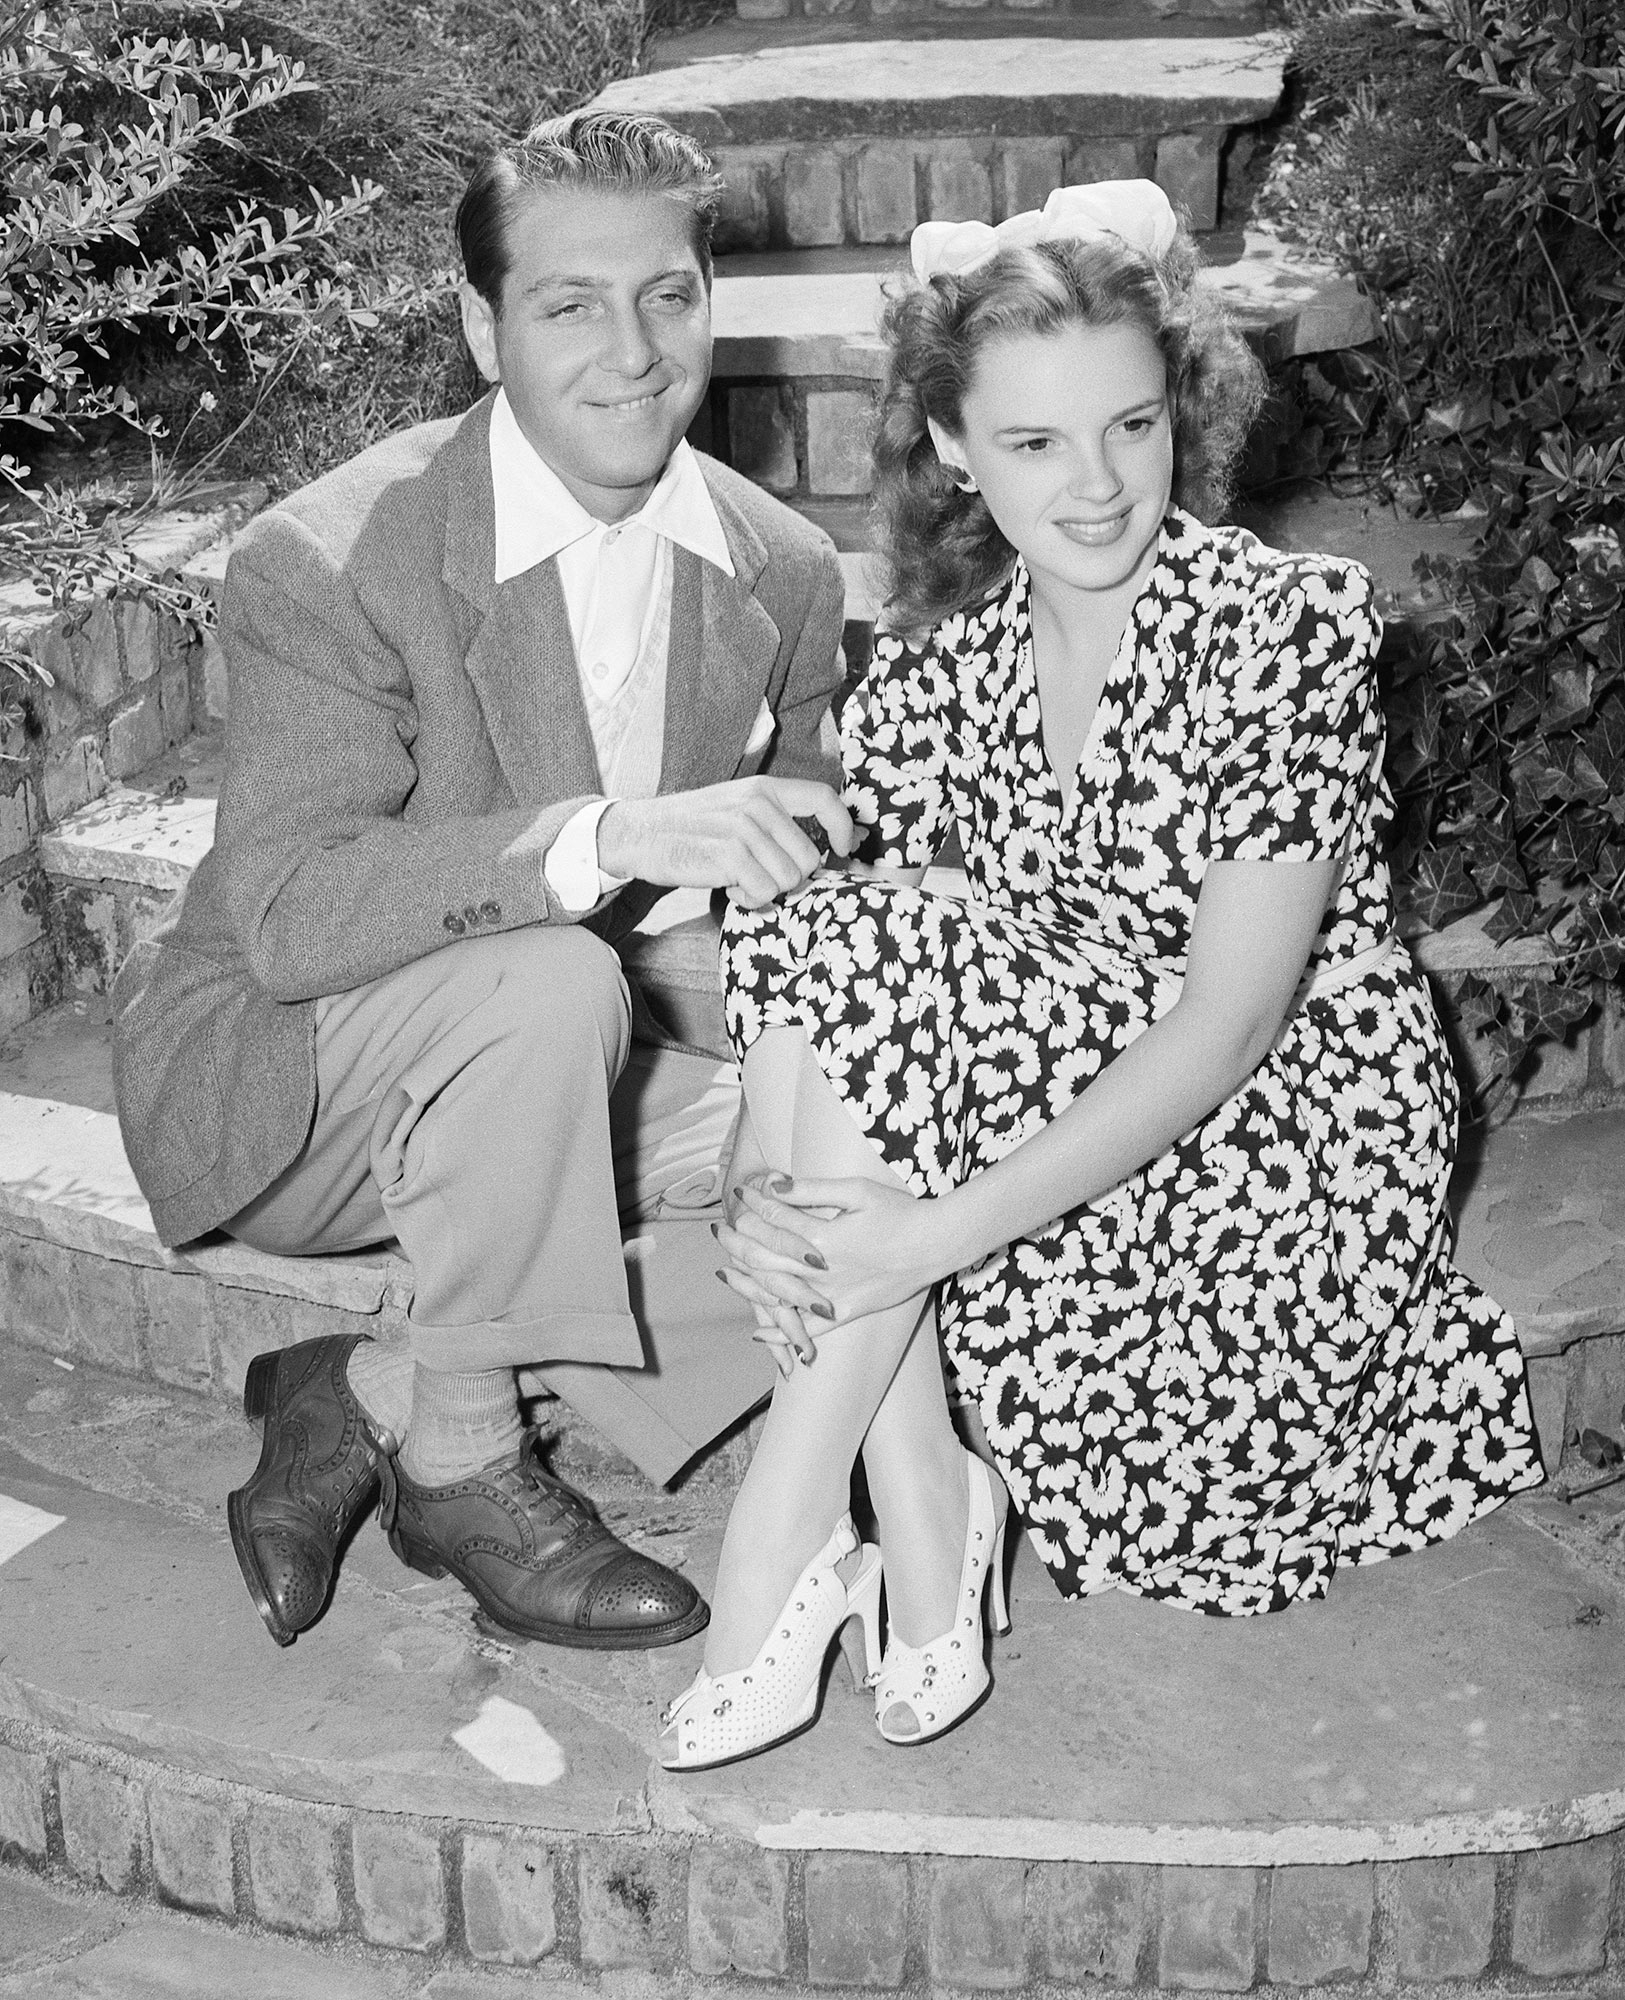 (Original Caption) 6/1941-Hollywood, CA- Judy Garland, singing star, and her fiance, composer-arranger David Rose, relax for a moment, as they make their first appearance together since announcing their engagement. The couple plan to be married some time next year.